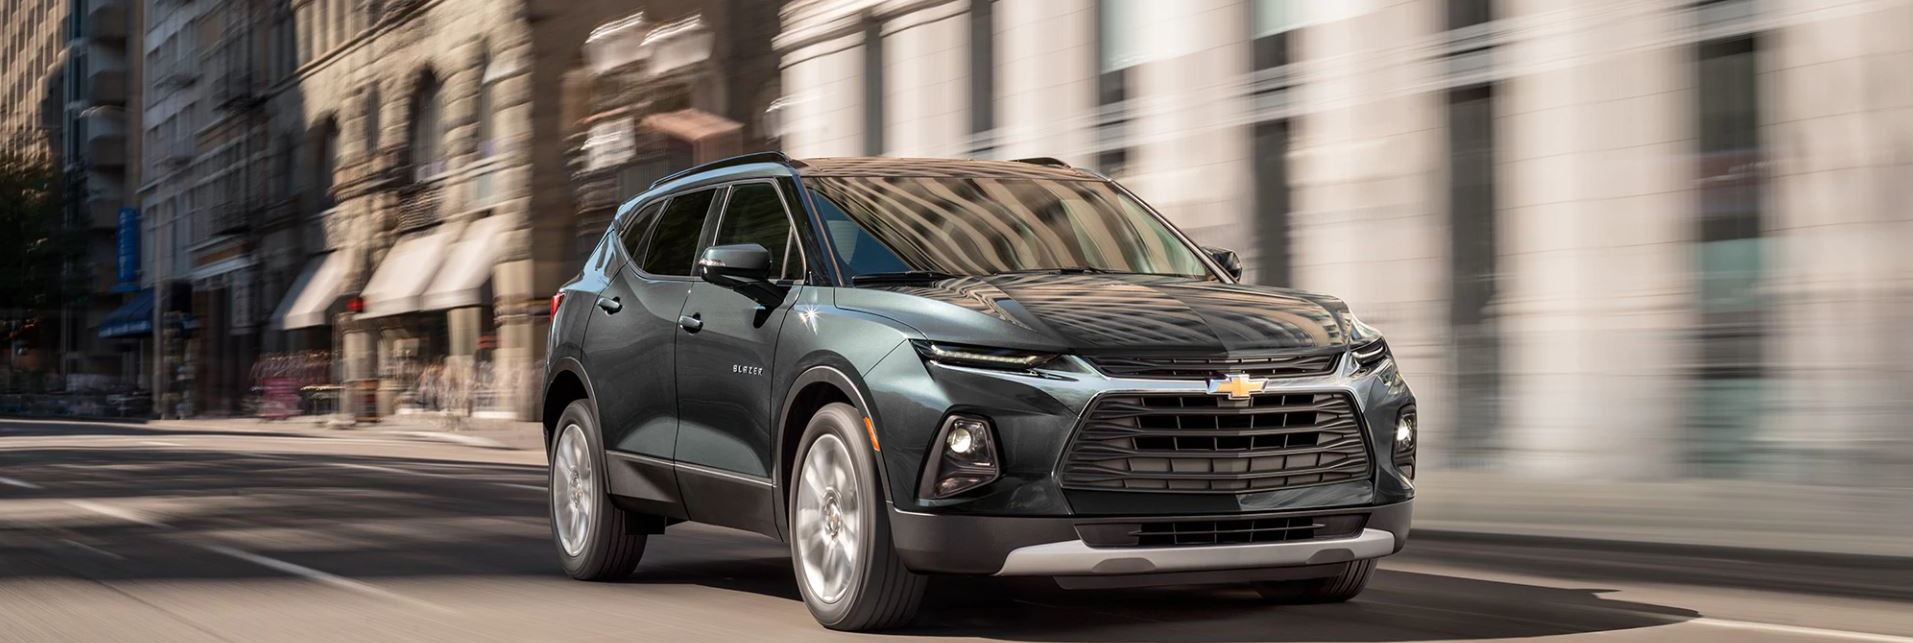 2020 Chevrolet Blazer Leasing near Fort Gratiot, MI